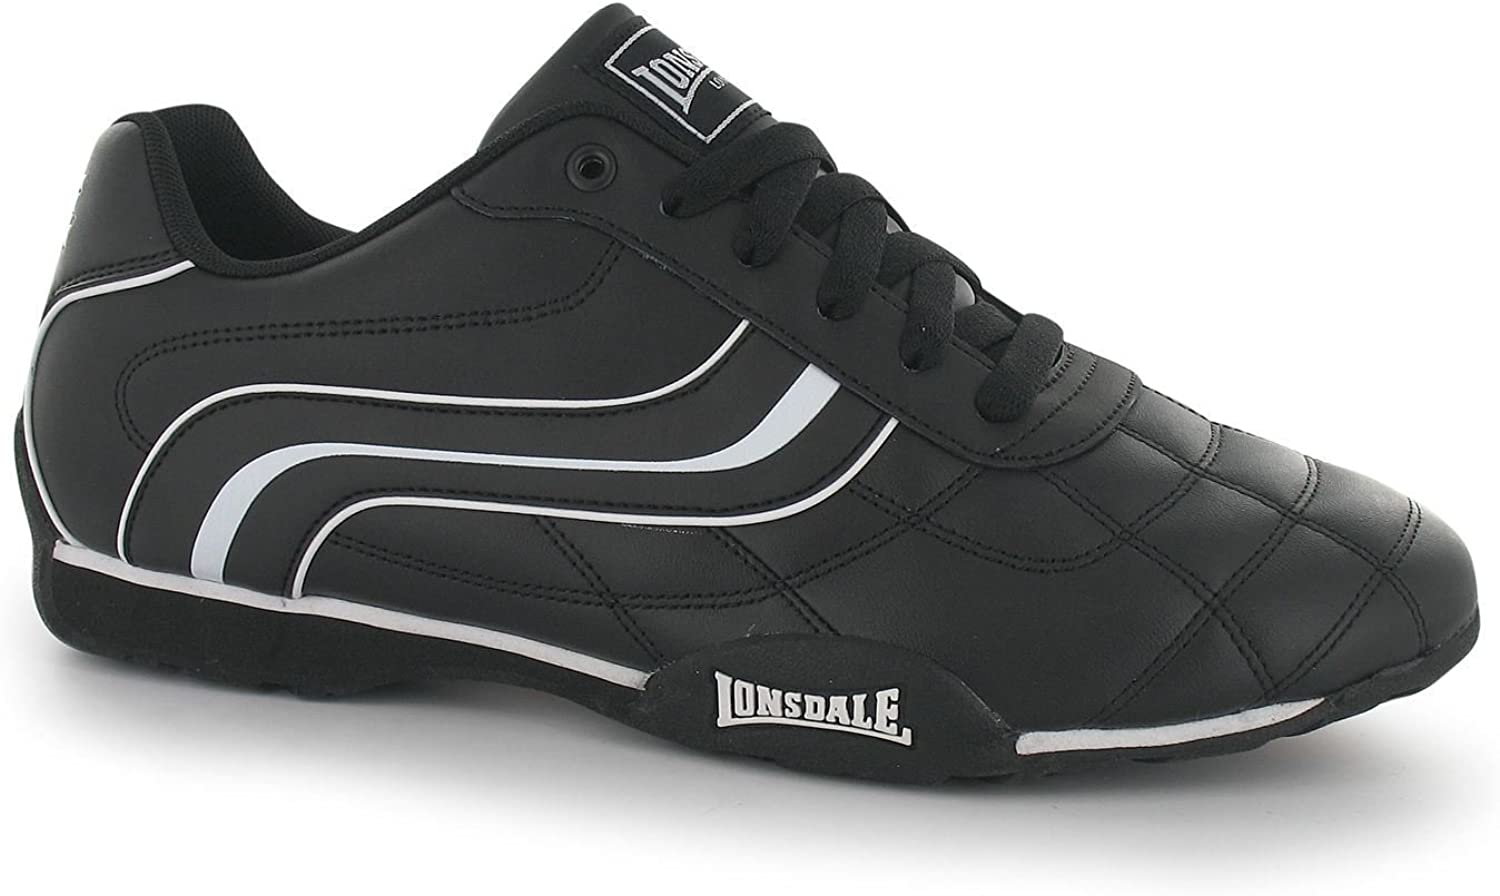 Lonsdale Camden Trainers Mens Black White Casual Sneakers shoes Footwear